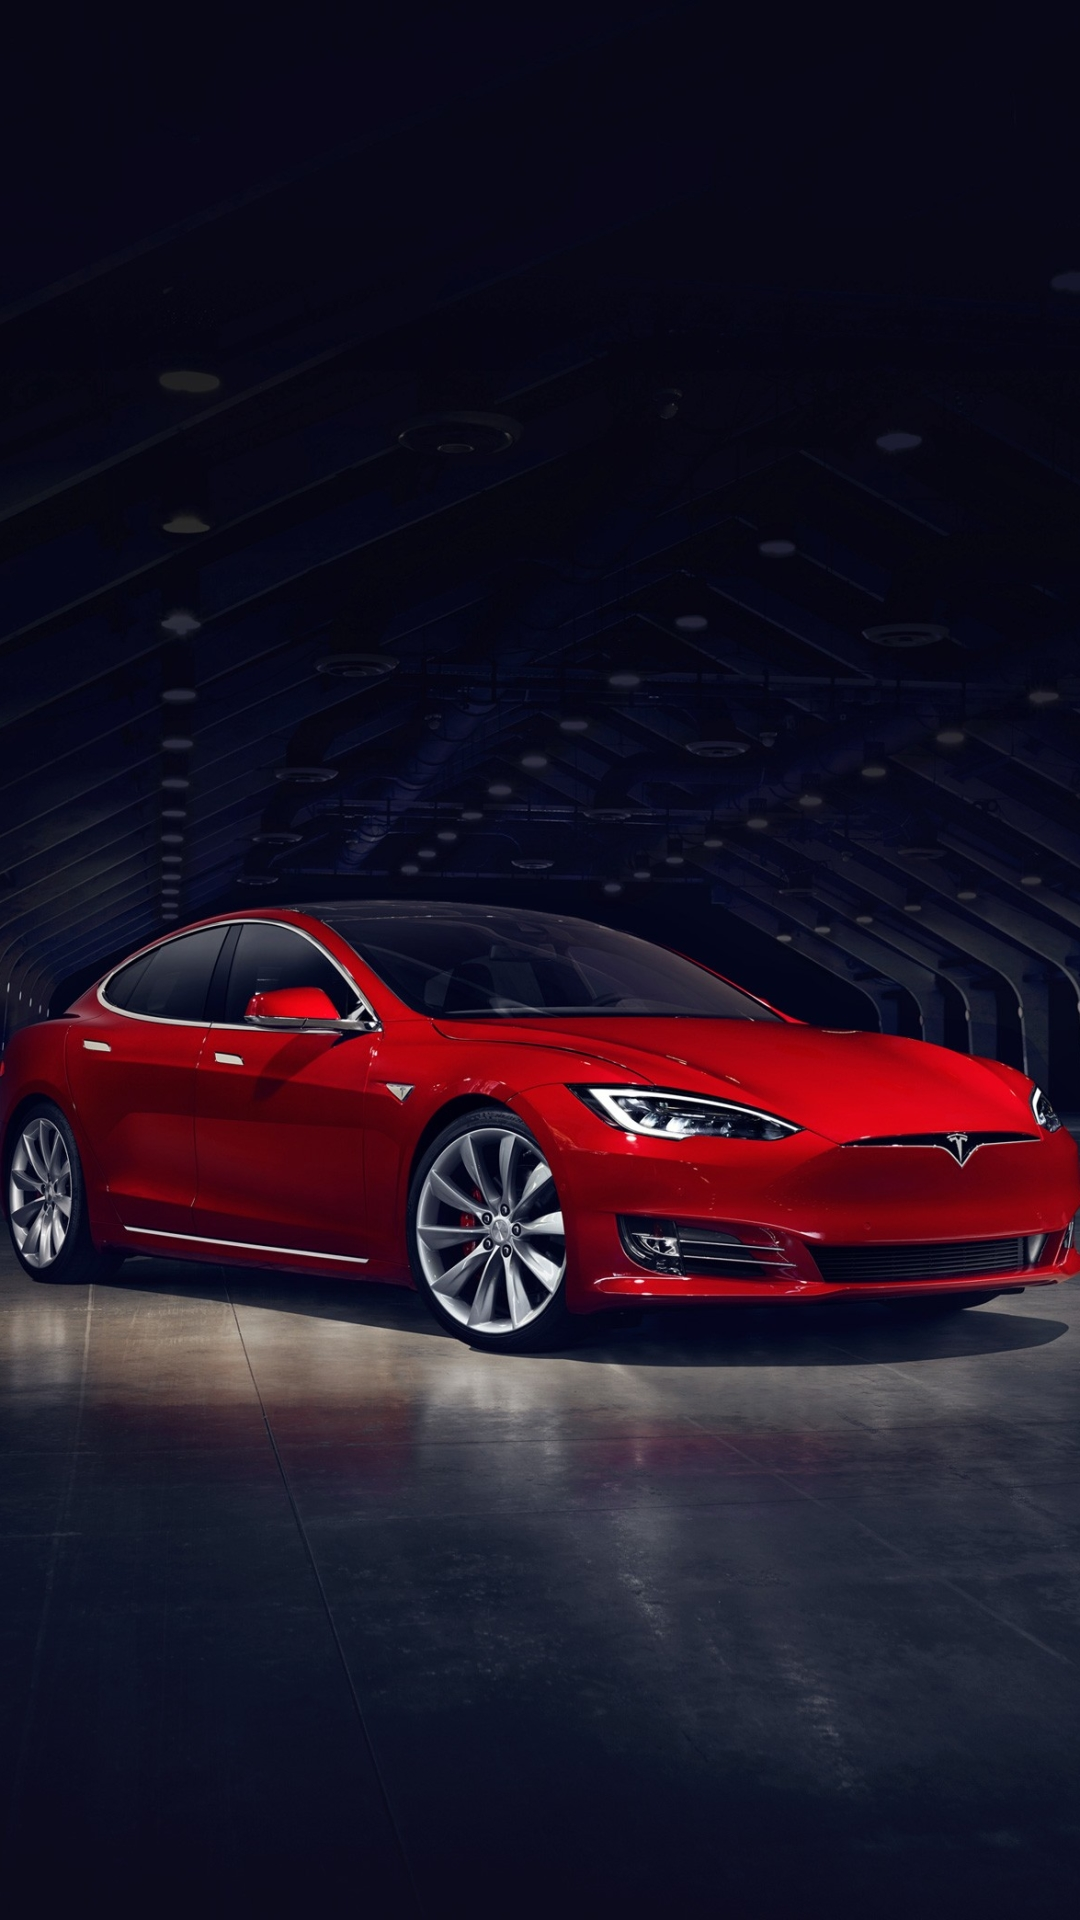 tesla wallpaper for iphone x 8 7 6 free download on. Black Bedroom Furniture Sets. Home Design Ideas